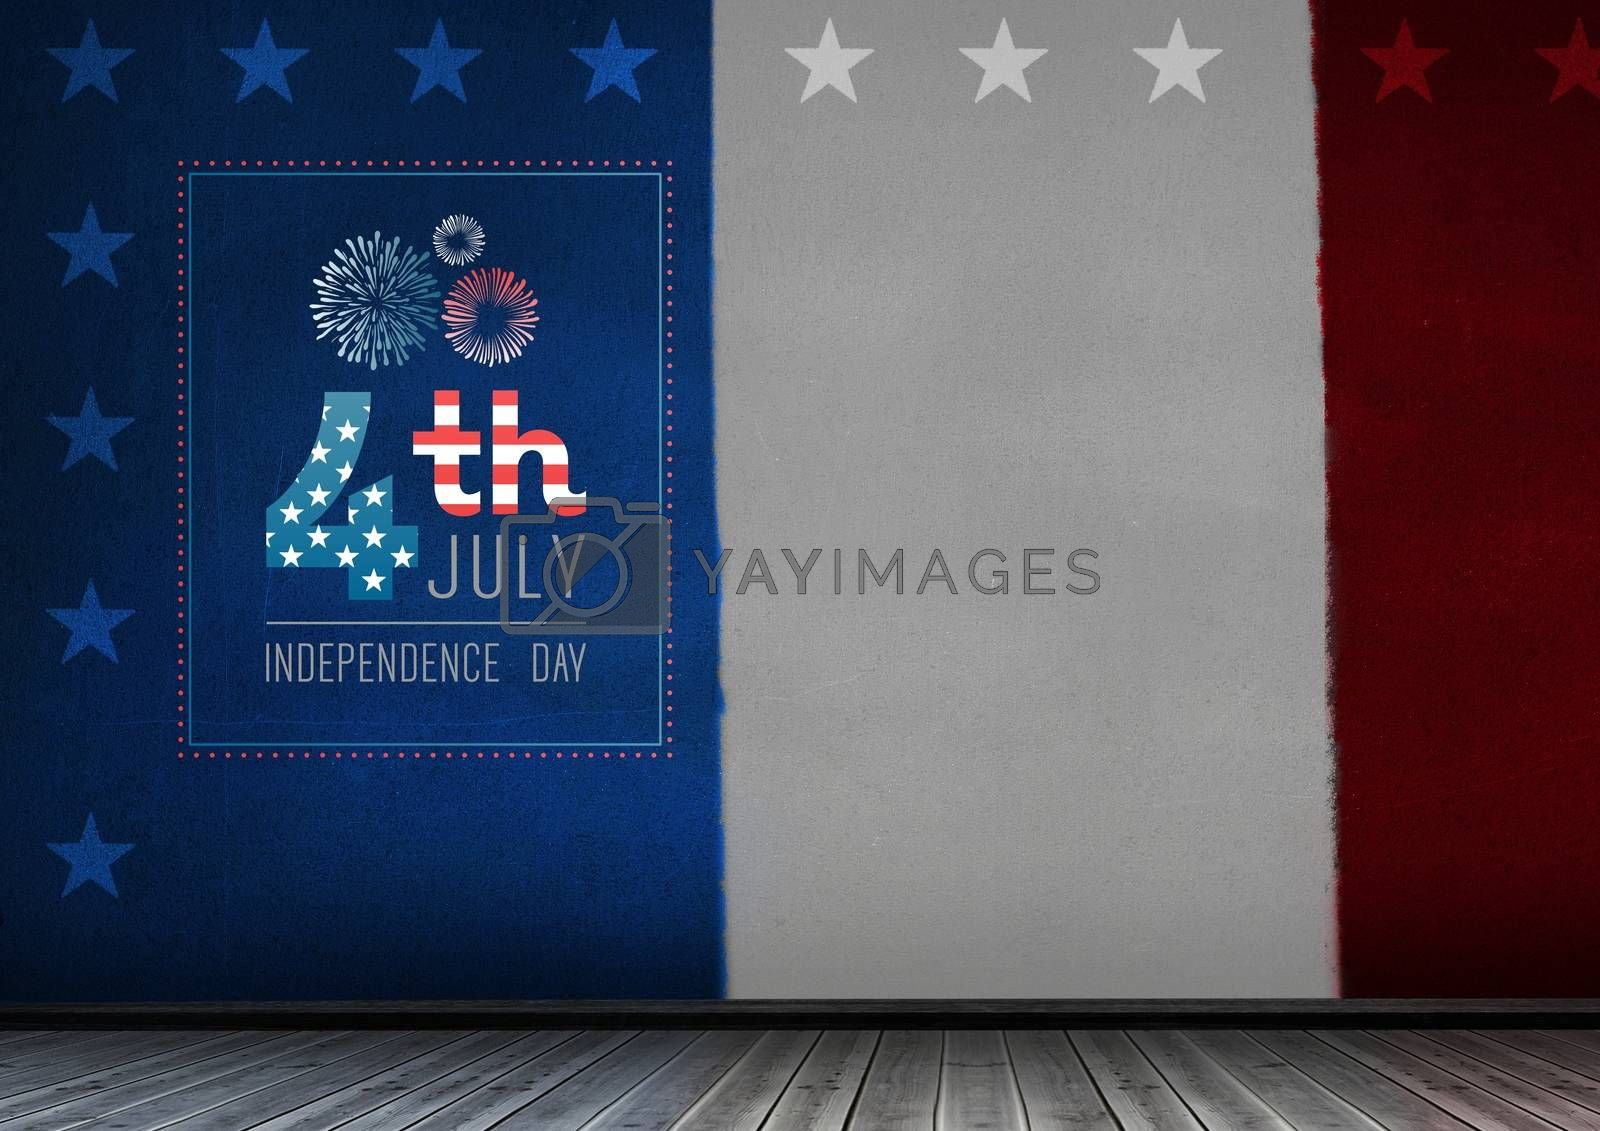 Digital composite of Composite image for the 4th of July against the french flag